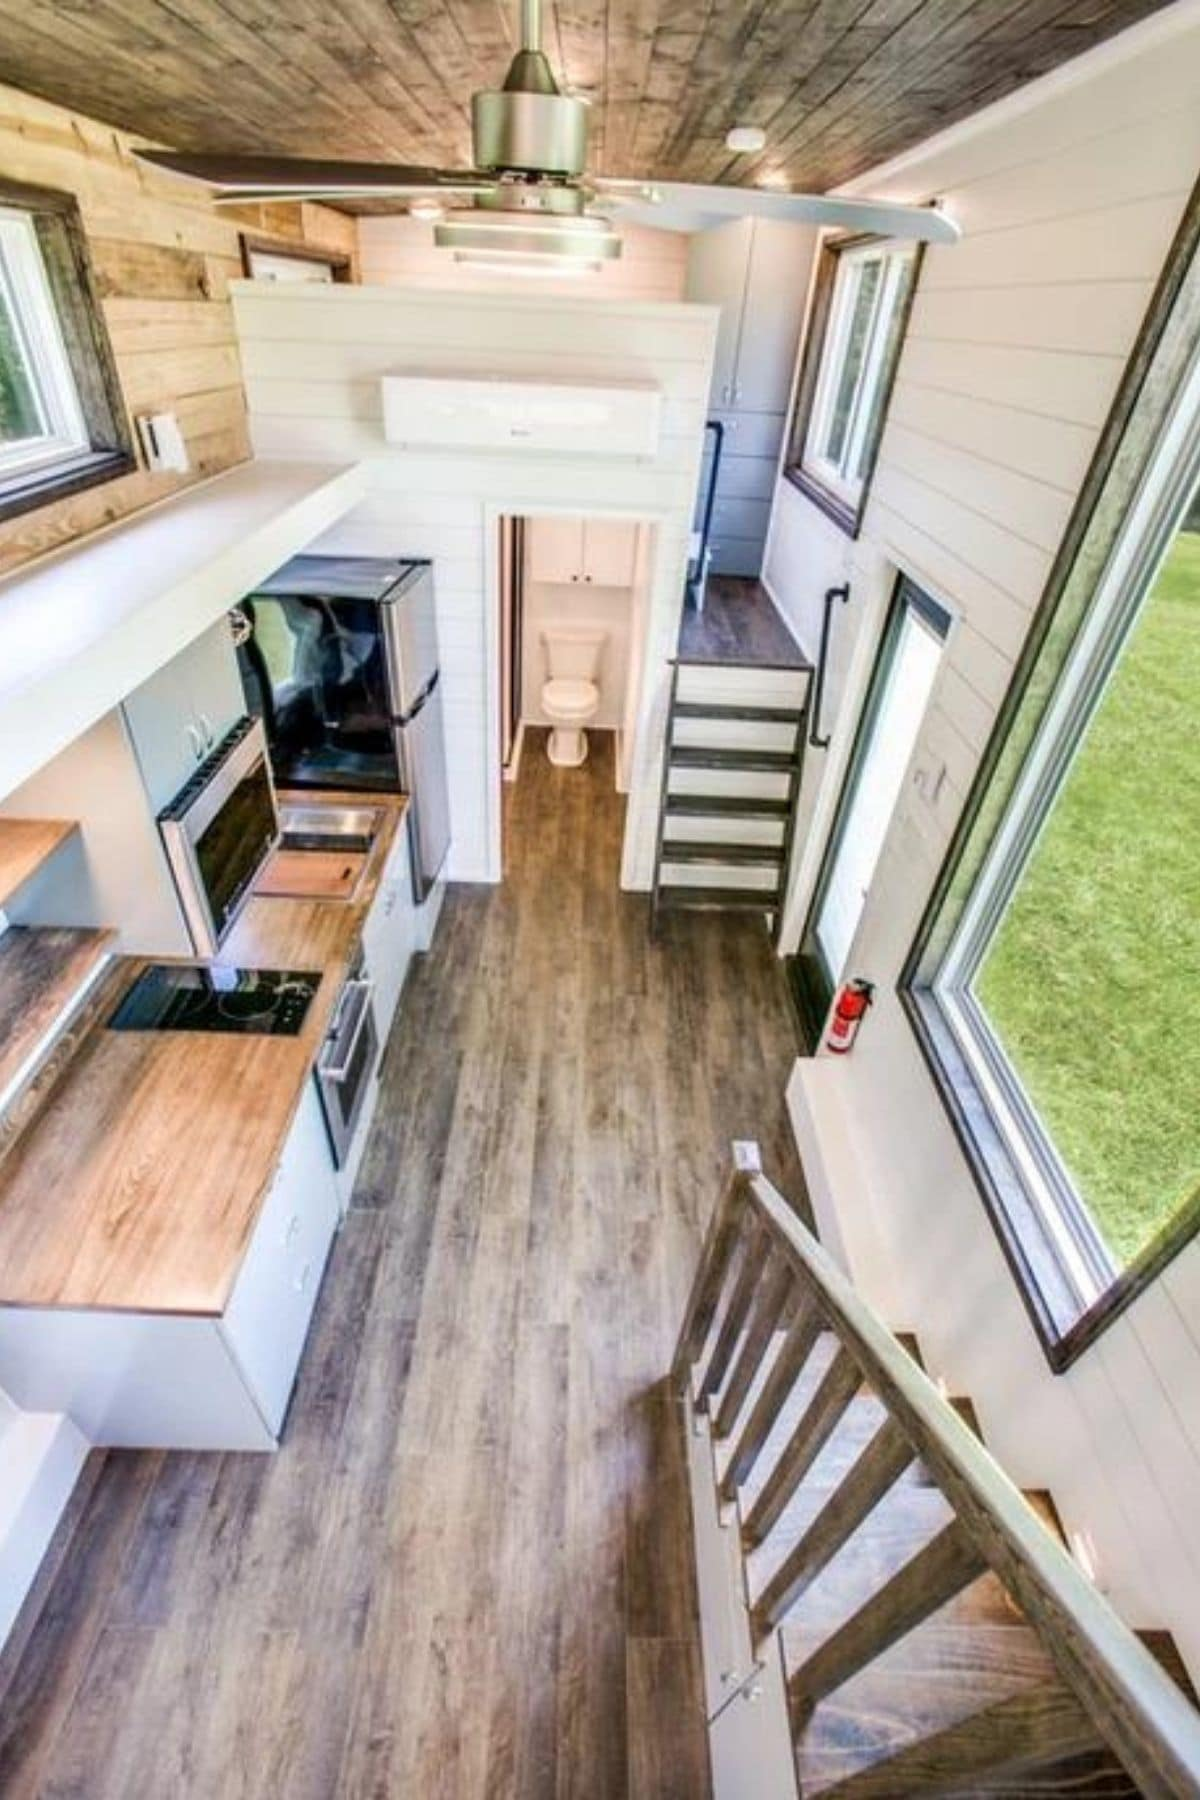 View down into tiny home from loft showing kitchen and stairs